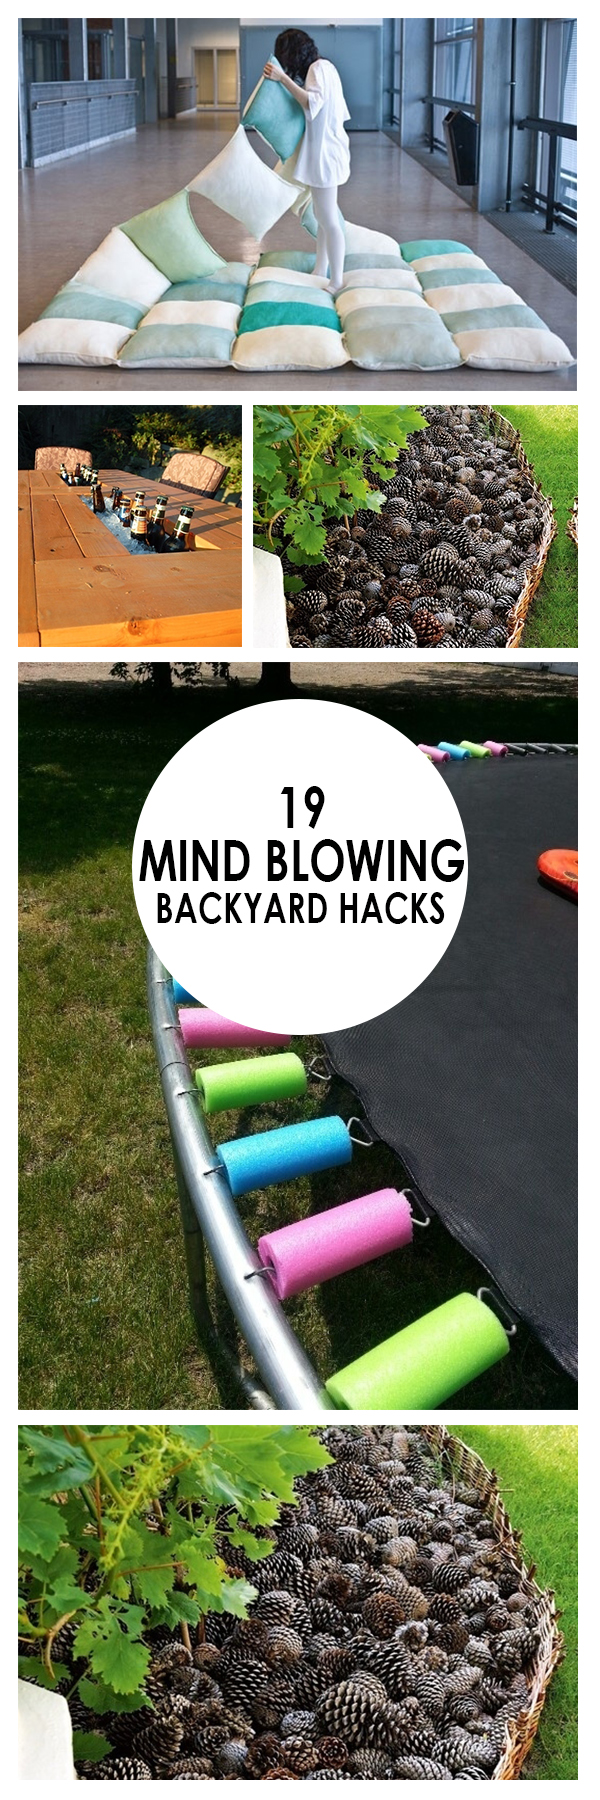 Backyard Hacks, Backyard Fun, Outdoor DIY , Backyard Ideas, Backyard Ideas on A Budget